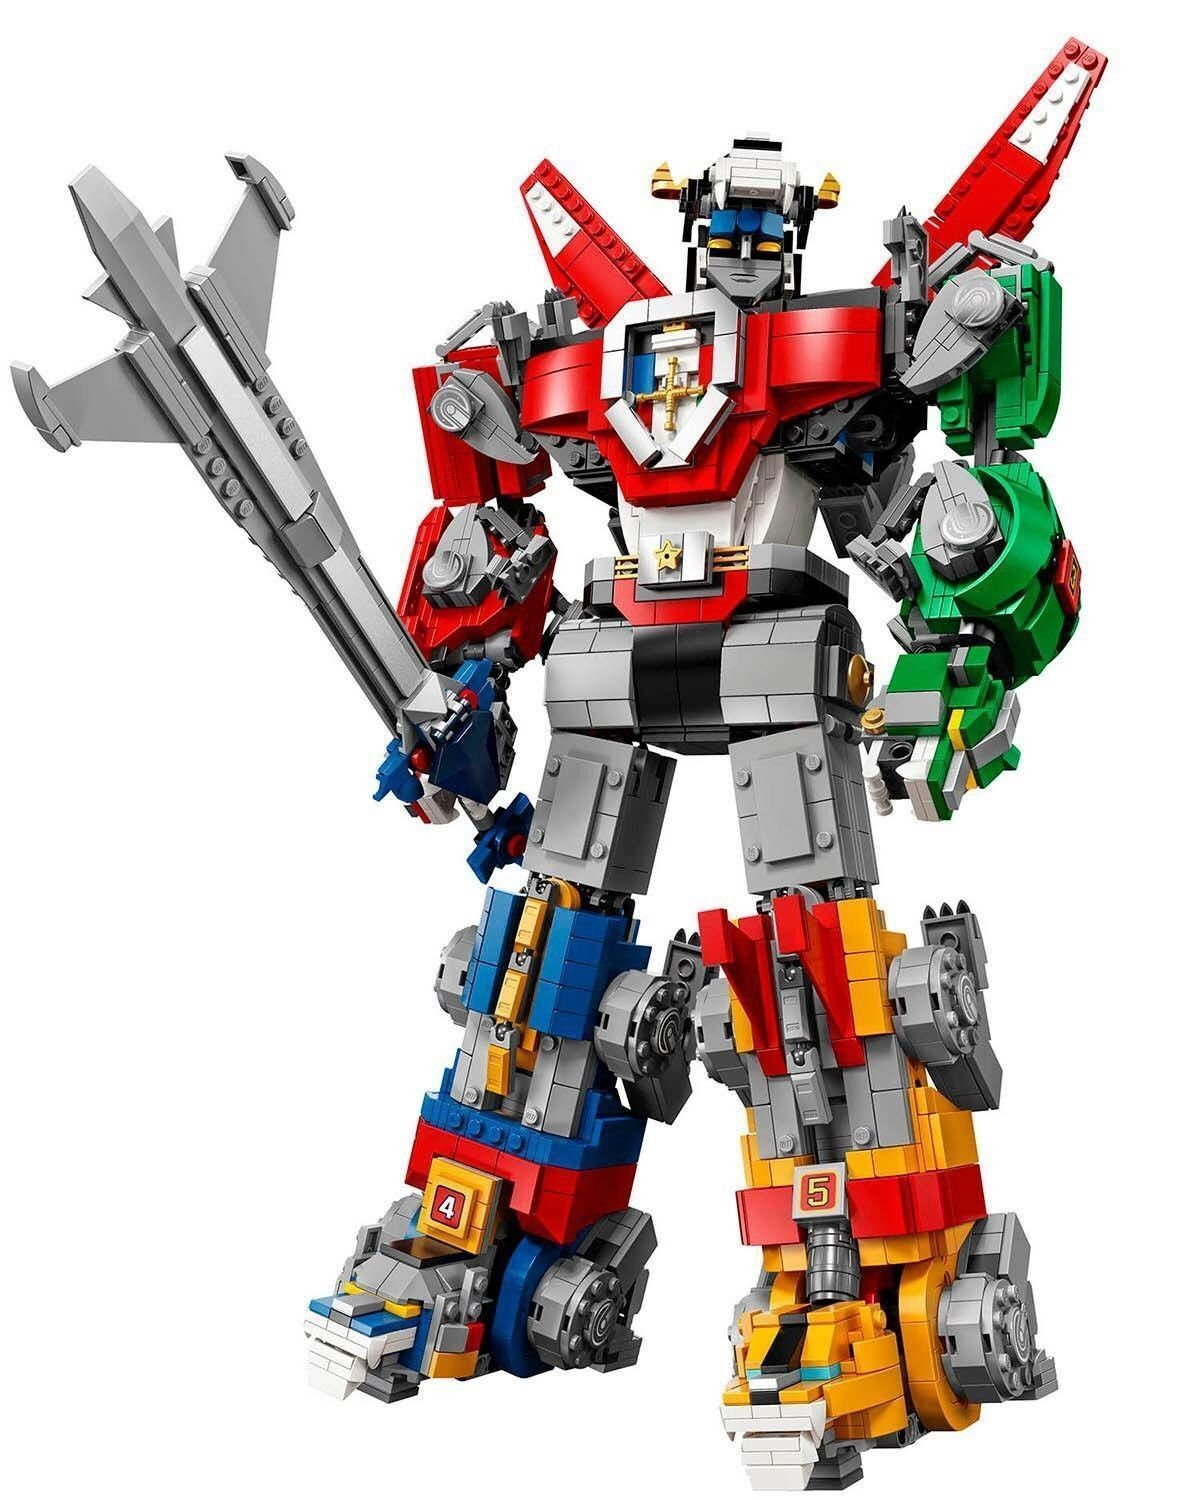 Lego Ideas Voltron Set 21311 2018 Exclusive- On Hand